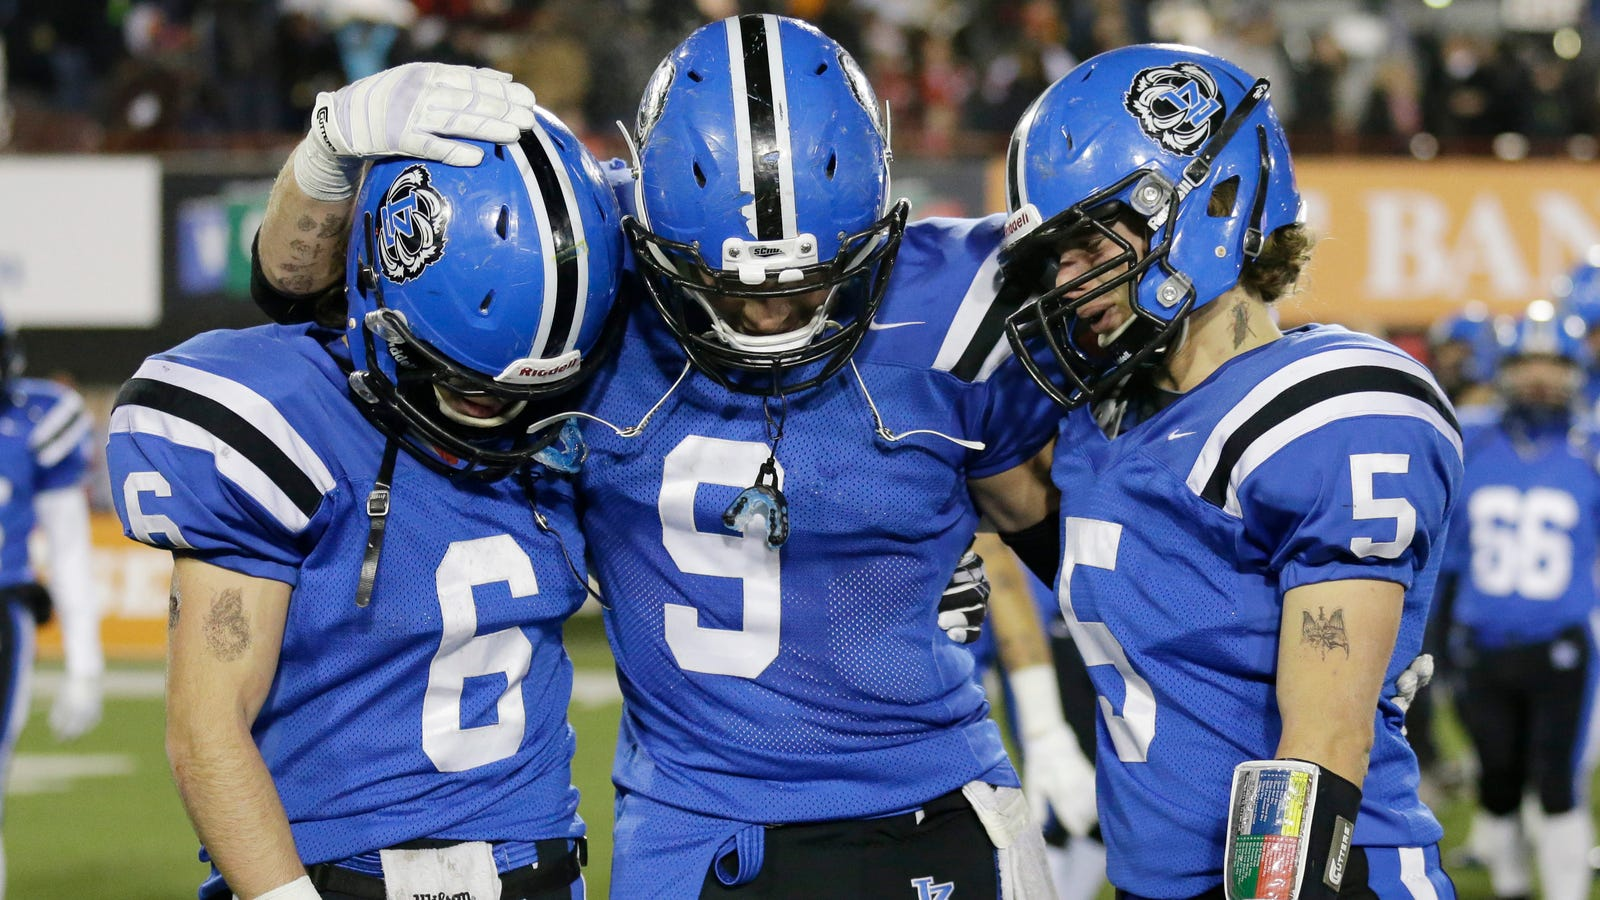 Lake Zurich Football >> Lawsuit High School Coaches Administrators Allowed Players To